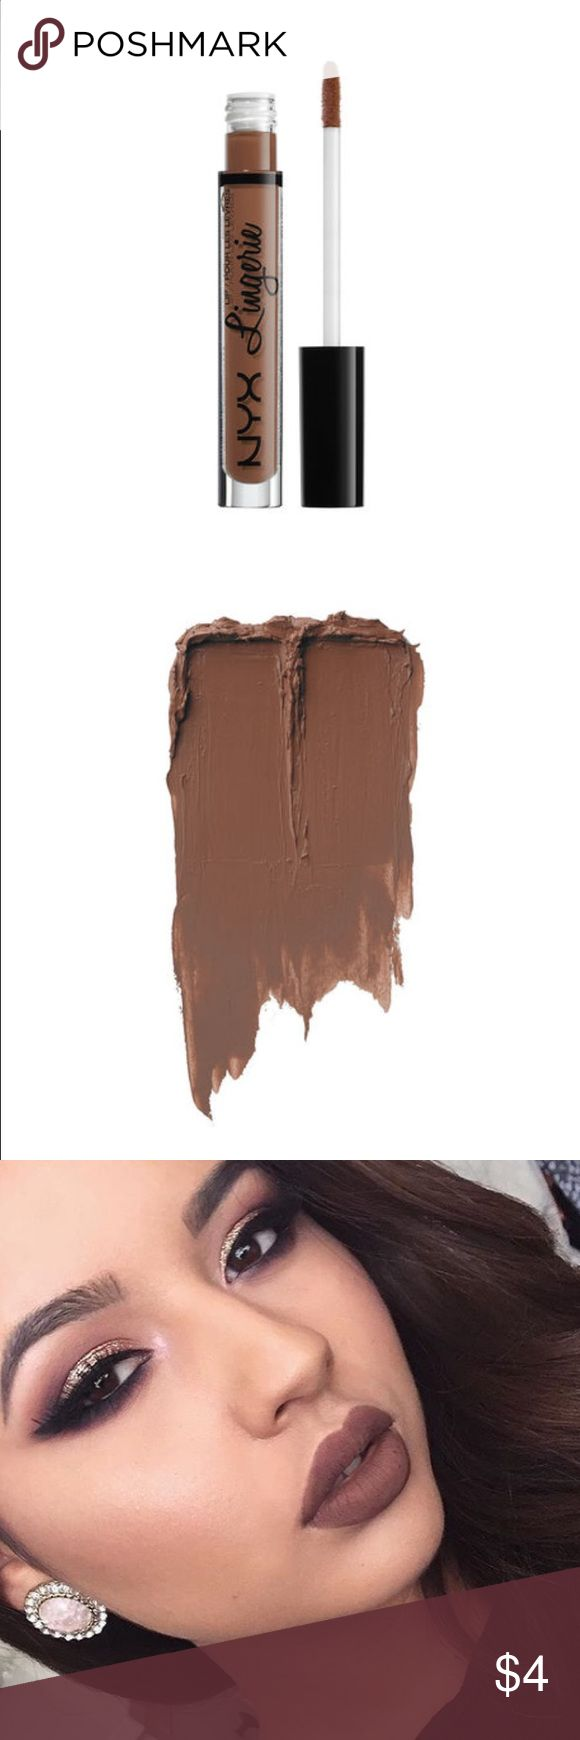 "Lip Lingerie Liquid Lipstick- ""Beauty Mark"" This is a chocolate brown, a very gorgeous brown nude with some reddish undertones. Very 90's inspired. I feel like this would be something Kylie Jenner would wear on a regular basis so if you wanna rock Kylie Jenner's brown lip trend, this lippie is perfect you NYX cosmetics Makeup Lipstick"